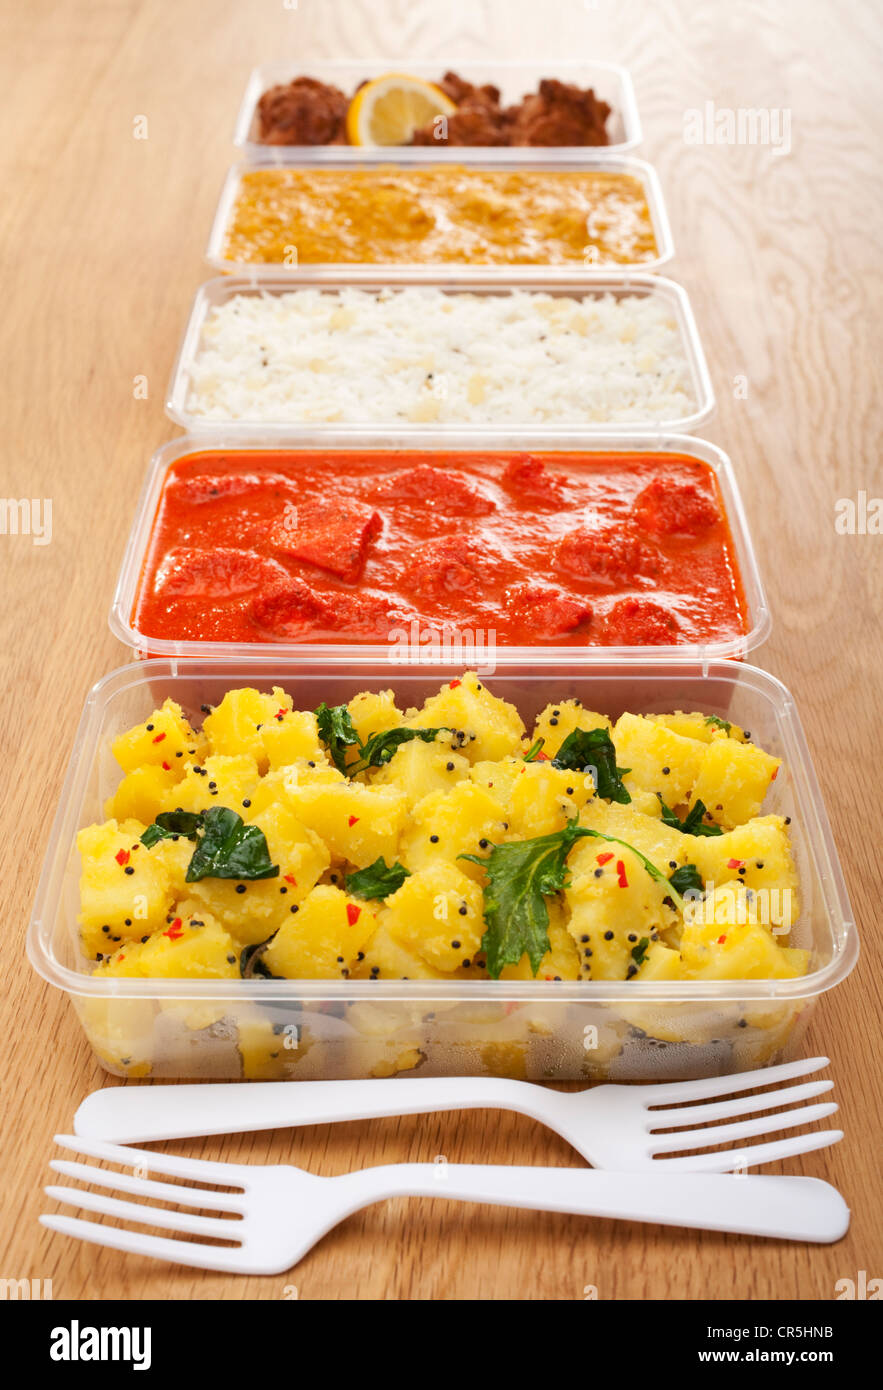 A selection of Indian takeaway food in plastic containers on a wooden table - Stock Image